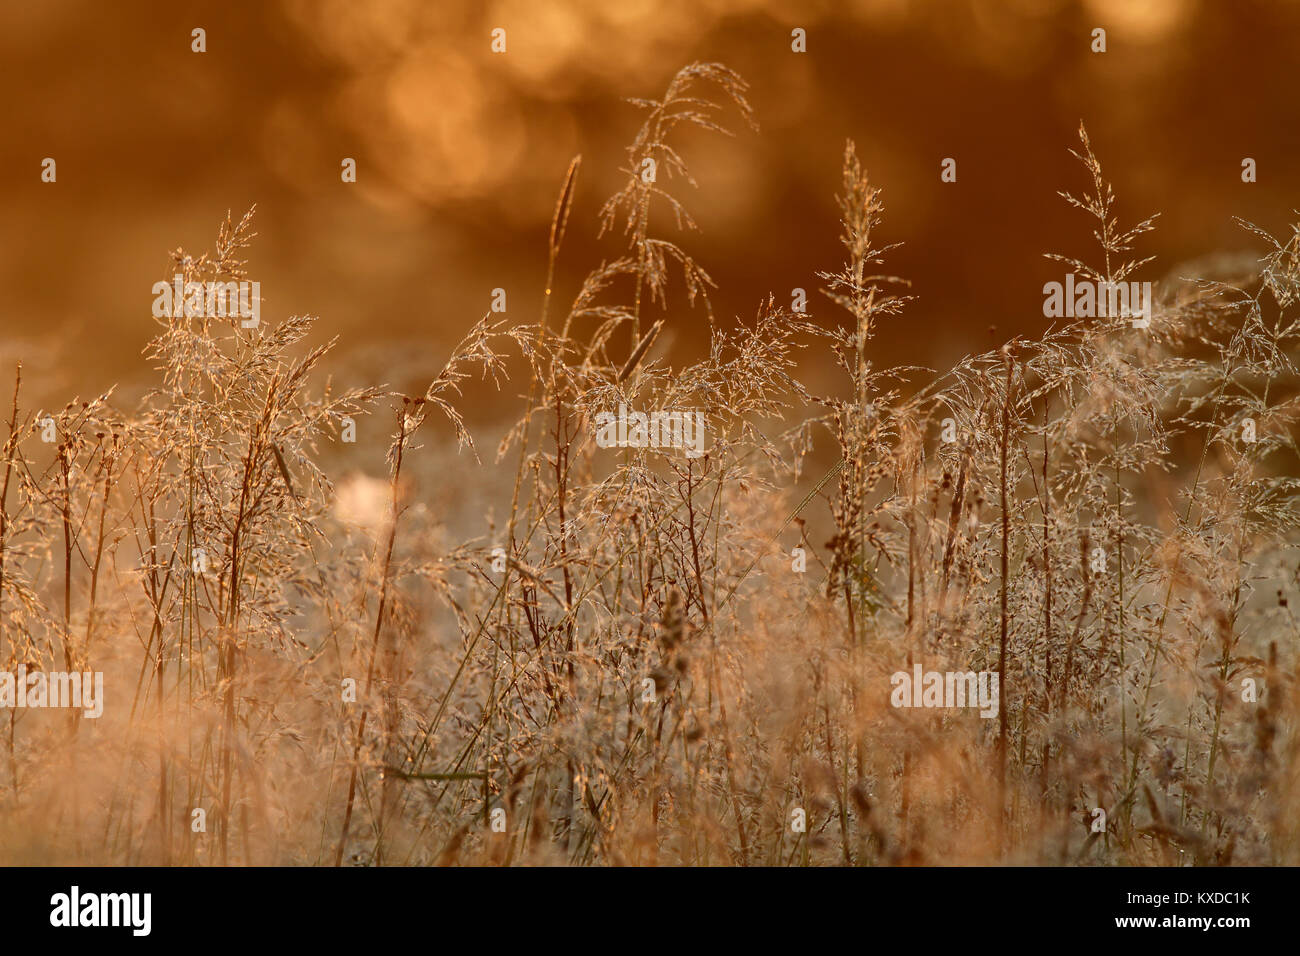 Grass with dewdrops in the back light, Biosphere Reserve Middle Elbe, Dessau-Rosslau, Saxony-Anhalt, Germany - Stock Image